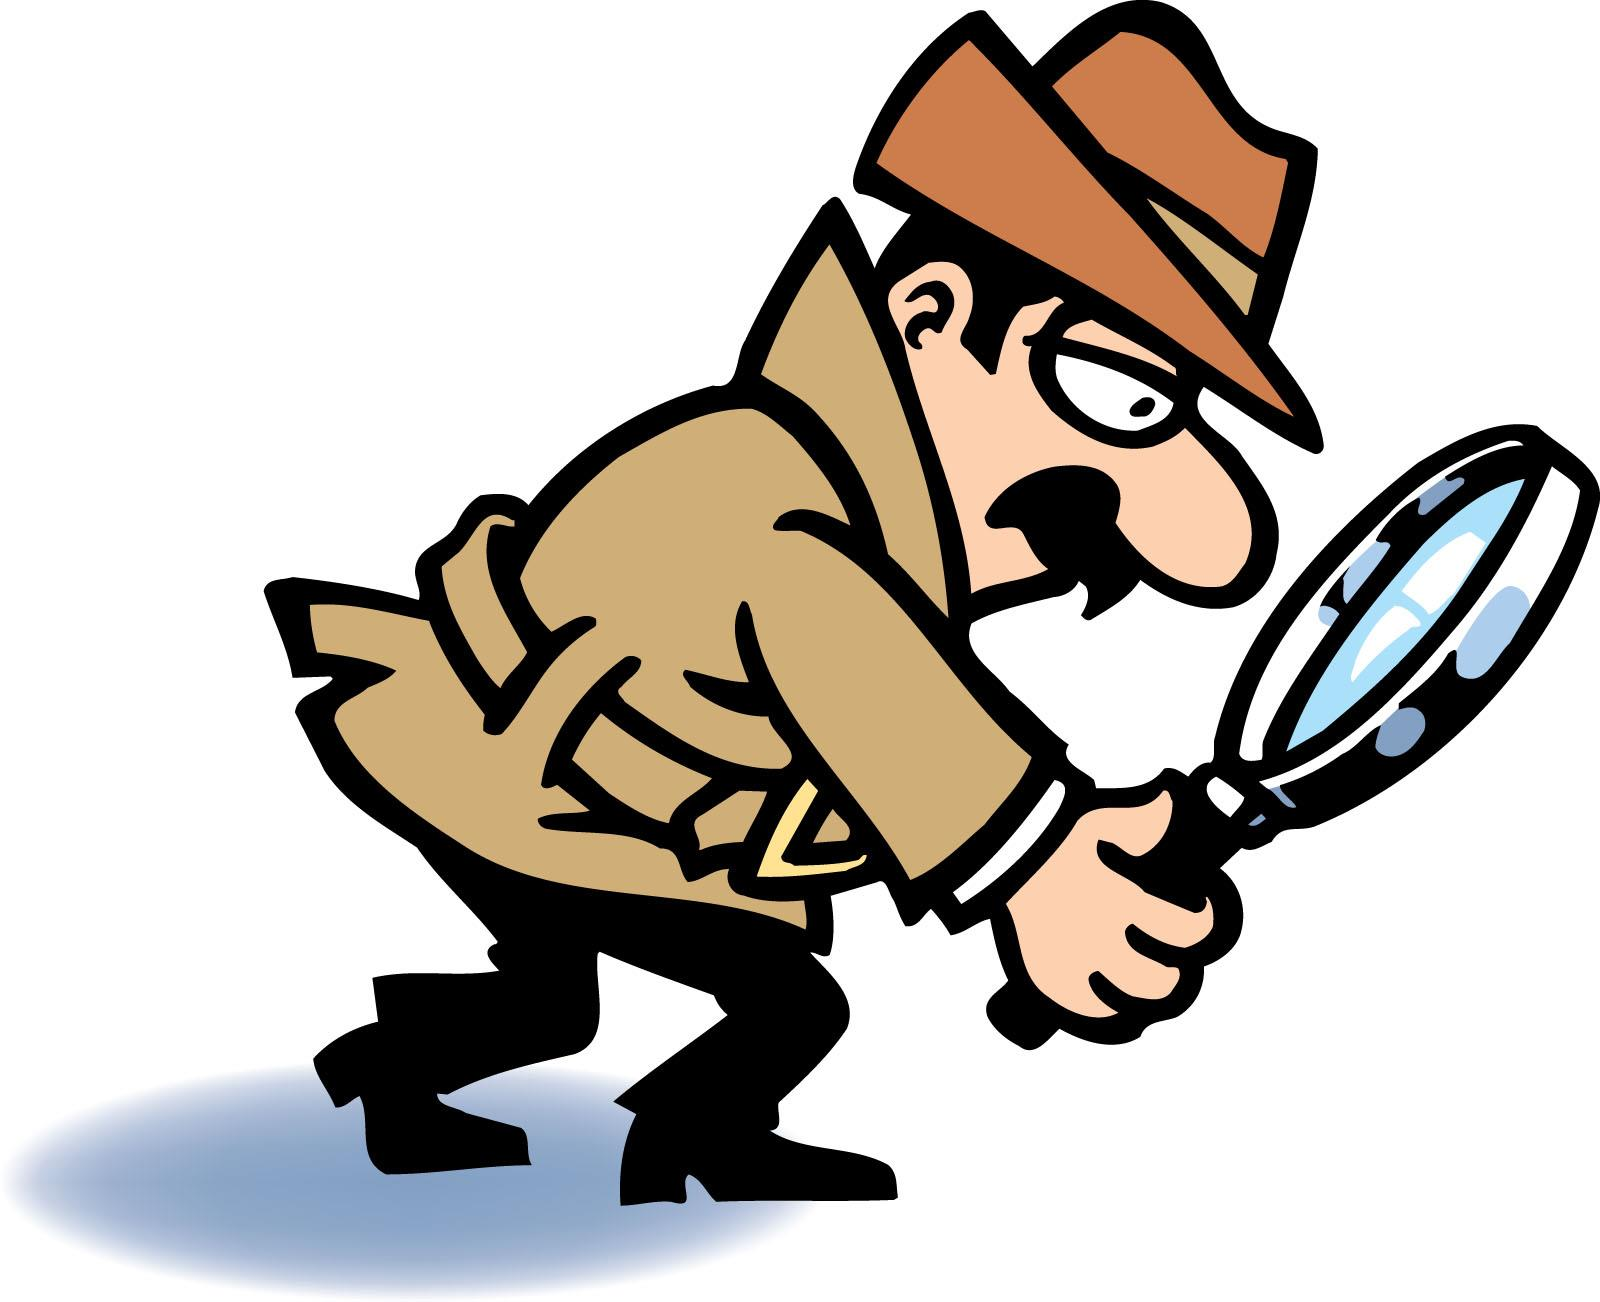 Scavenger hunt clipart. Hunts and exercises the